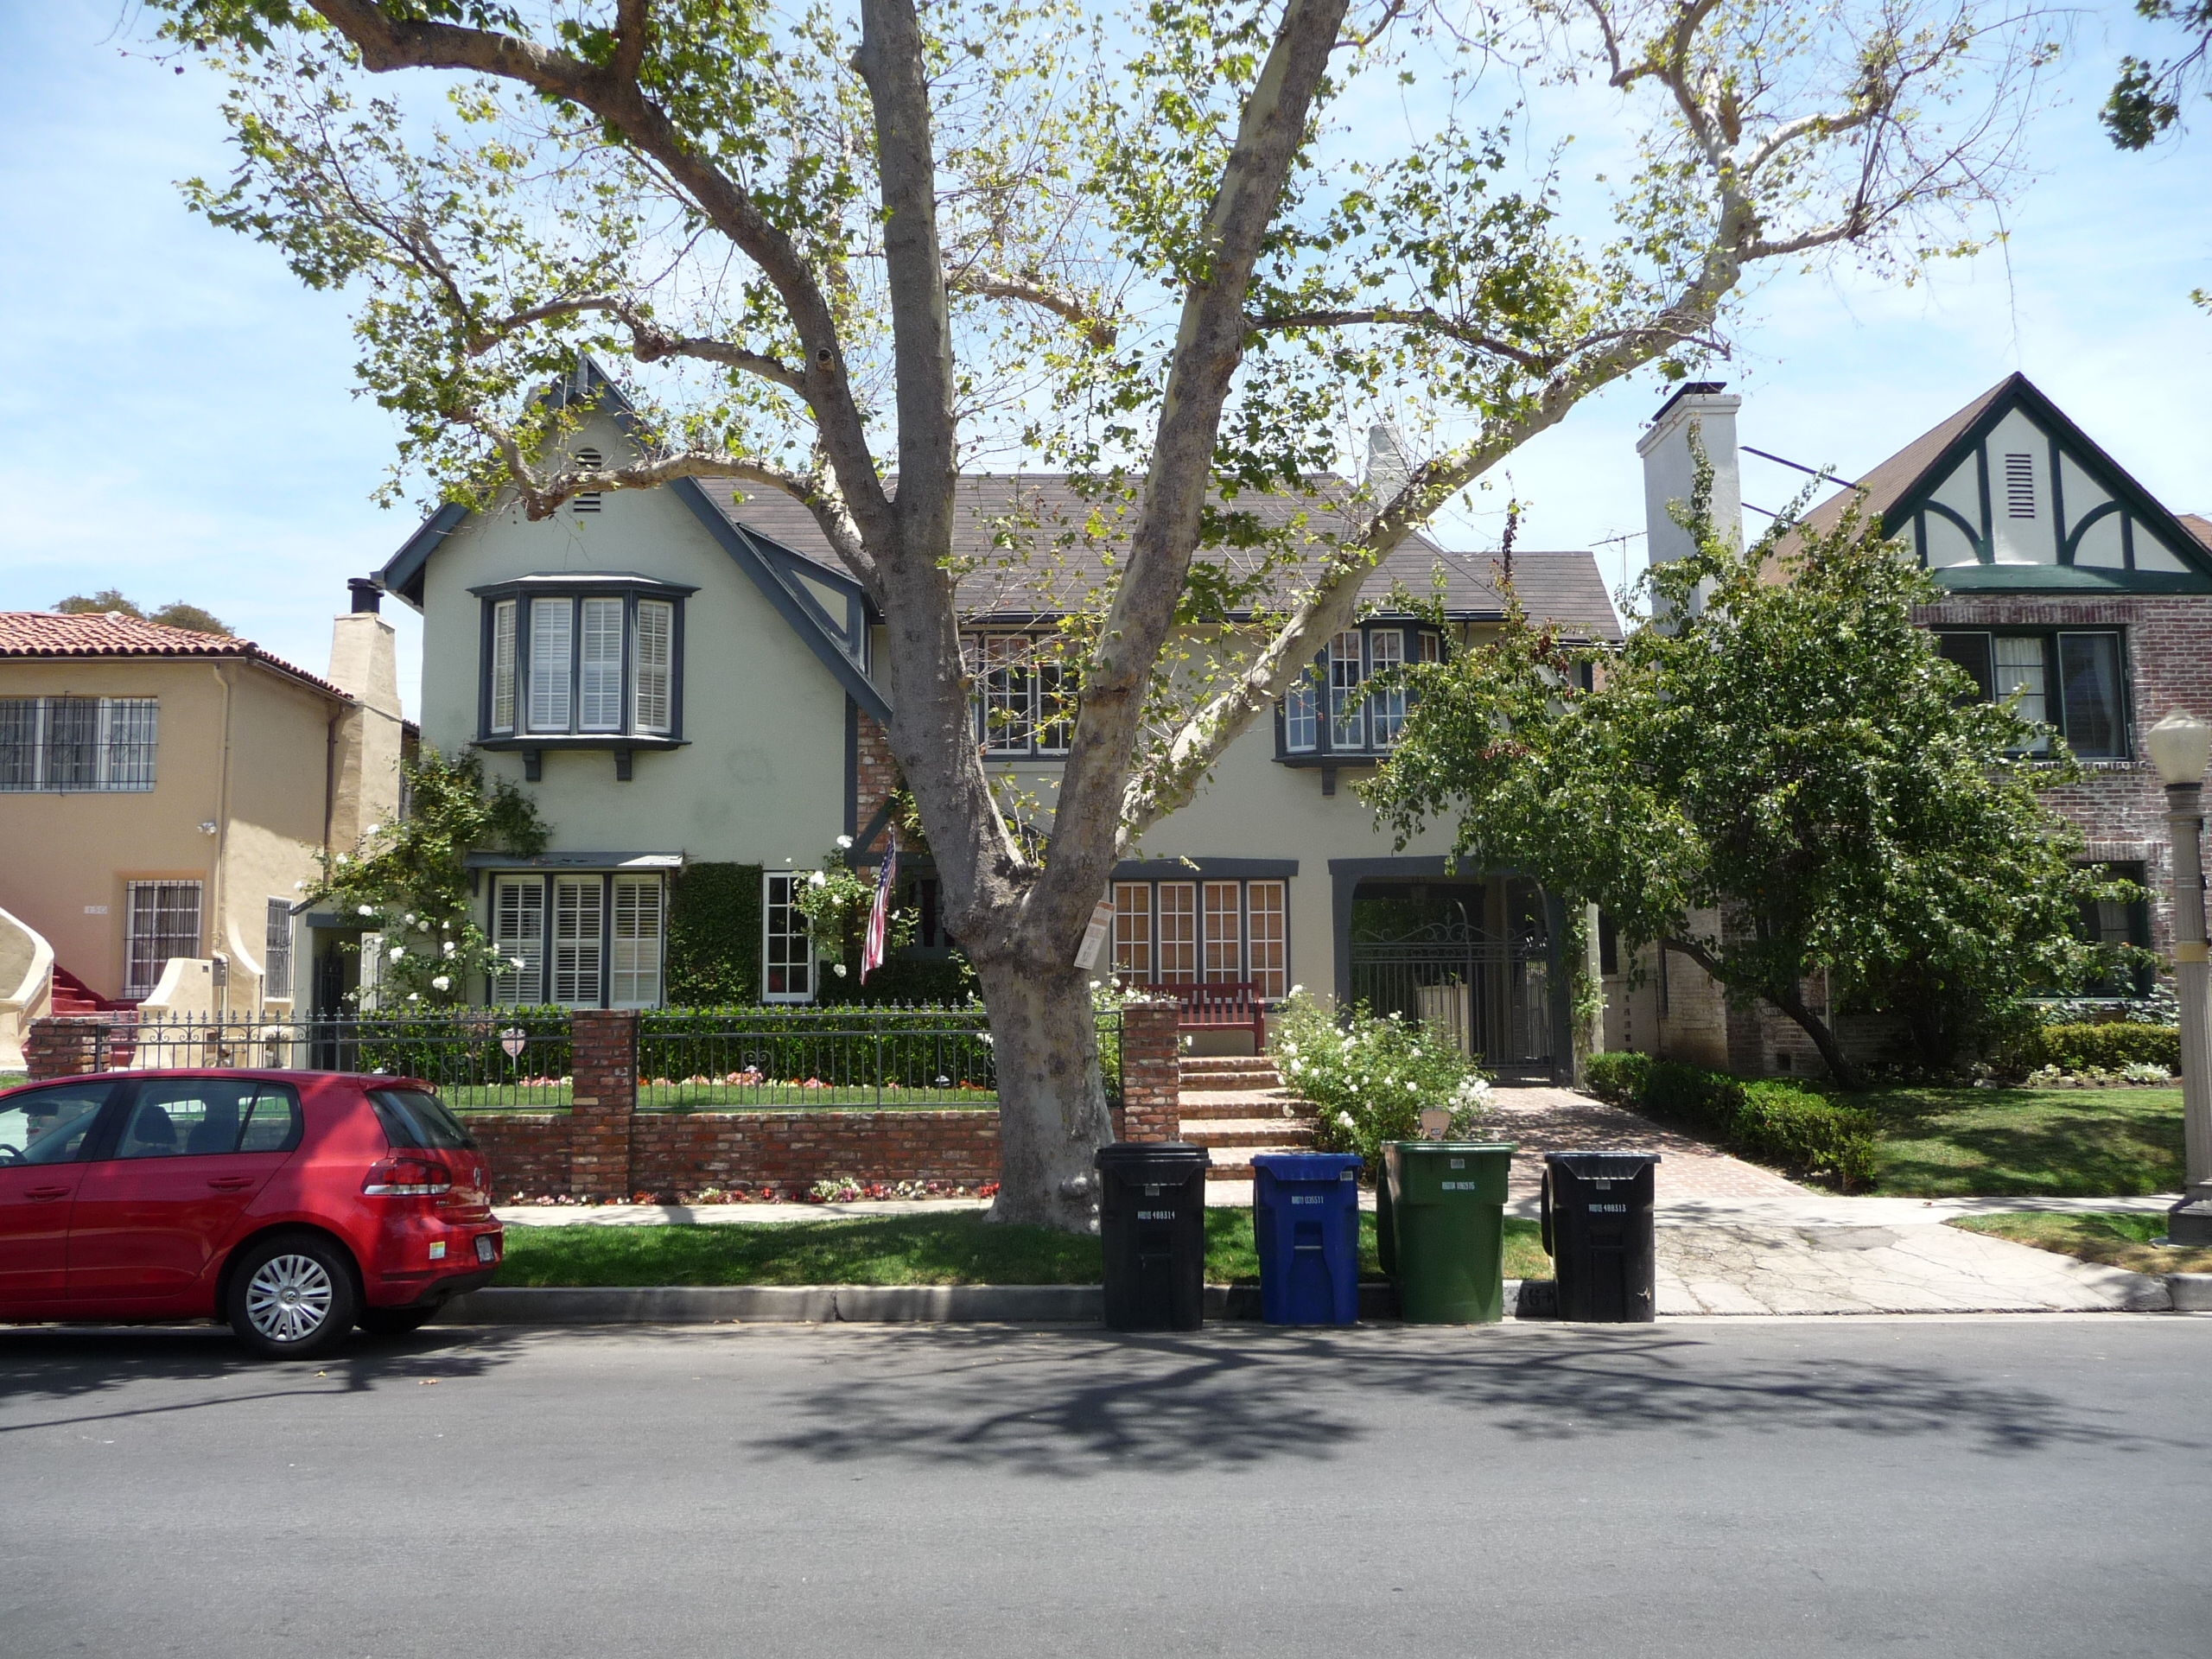 146 N MANSFIELD AVE - PHOTO